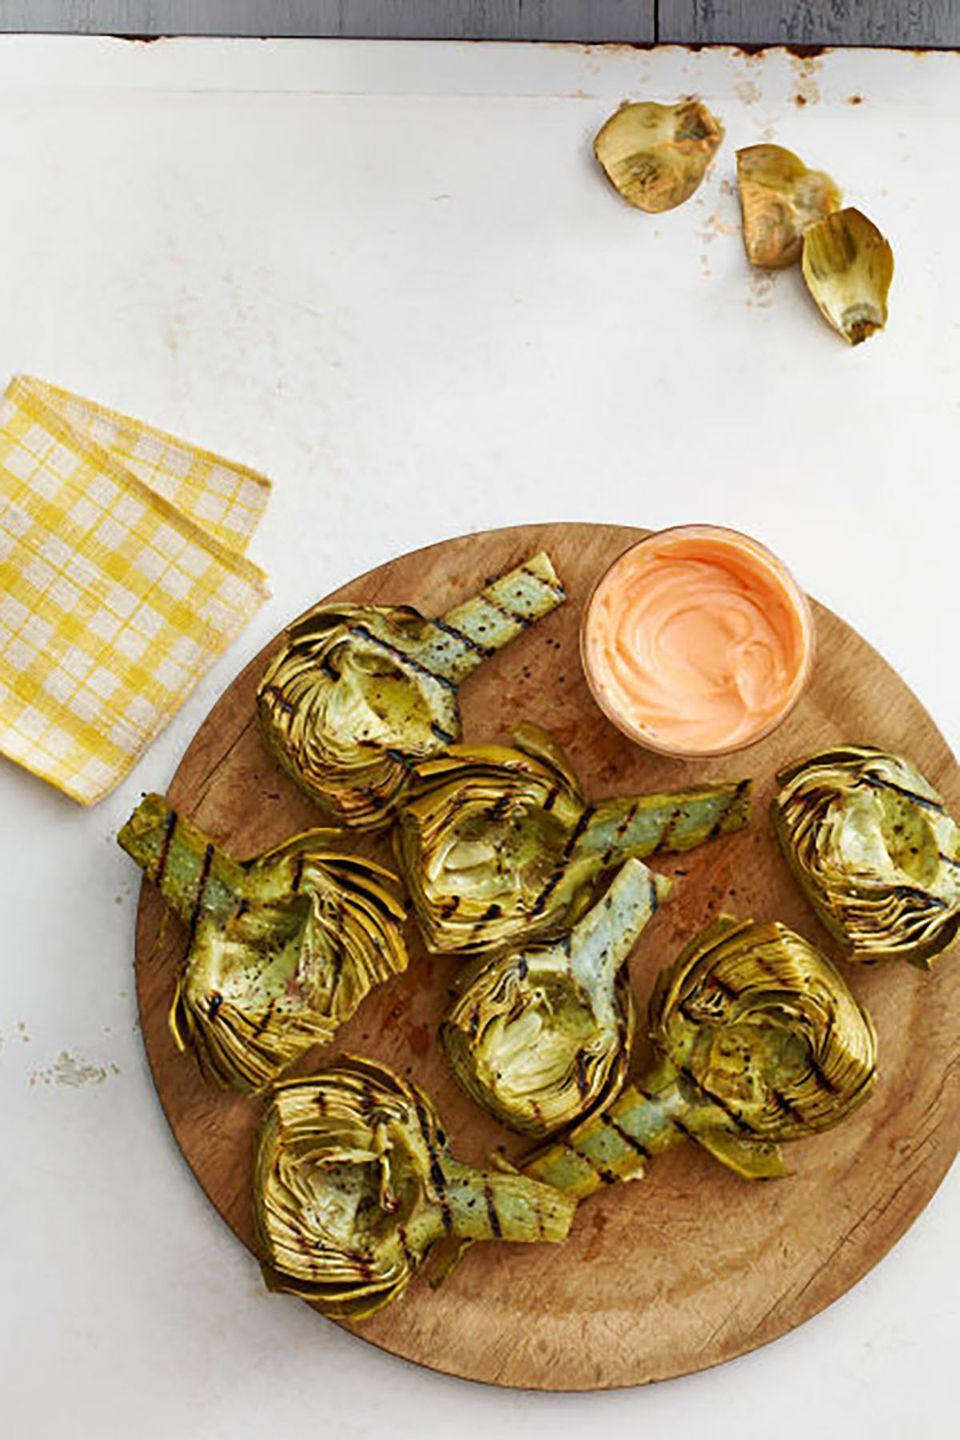 "A little sweet, smoky, and spicy, these simple grilled artichokes make an unexpectedly delicious appetizer or party dish. <a href=""https://www.countryliving.com/food-drinks/recipes/a5136/grilled-artichokes-harissa-honey-dip-recipe-clx0514/"" rel=""nofollow noopener"" target=""_blank"" data-ylk=""slk:Get the recipe."" class=""link rapid-noclick-resp""><strong>Get the recipe.</strong></a>"